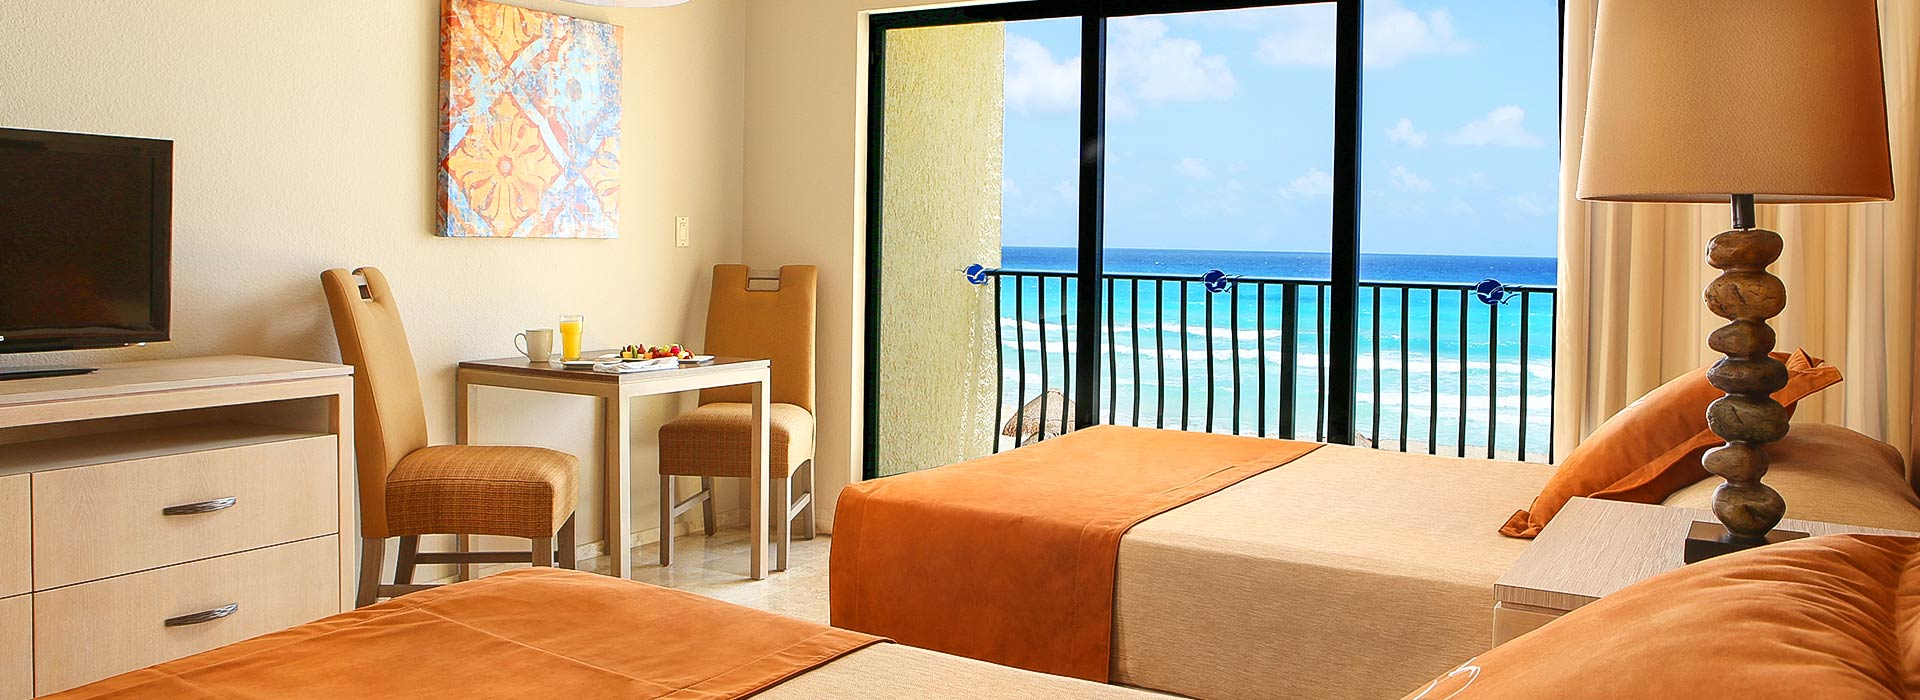 The royal sands resort two bedroom suite with ocean view - Cancun 2 bedroom suites all inclusive ...